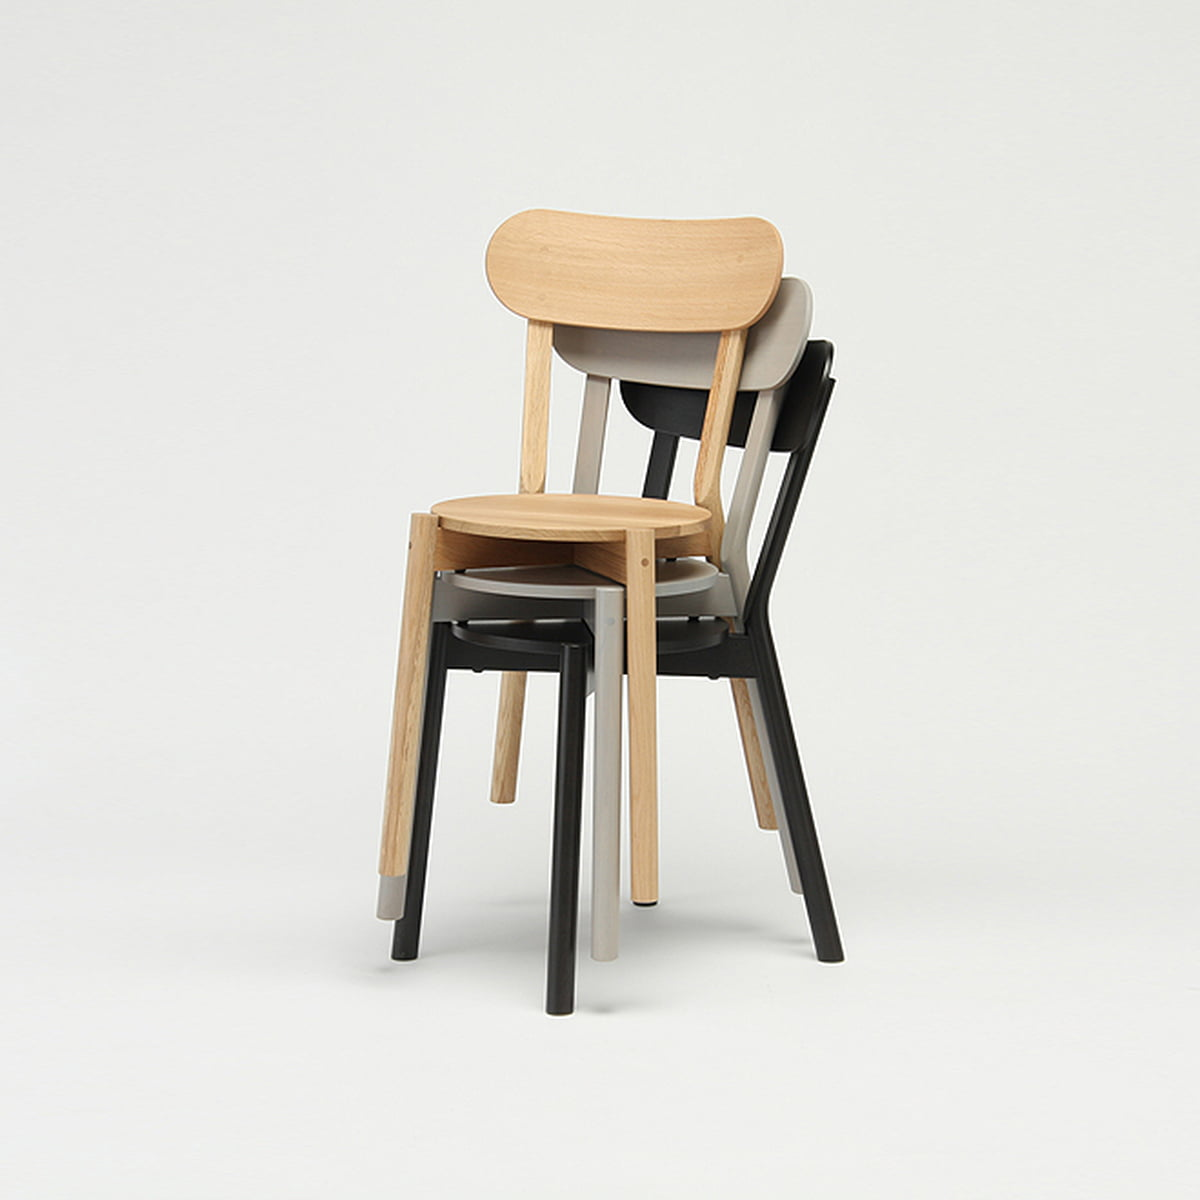 The karimoku new standard castor chair